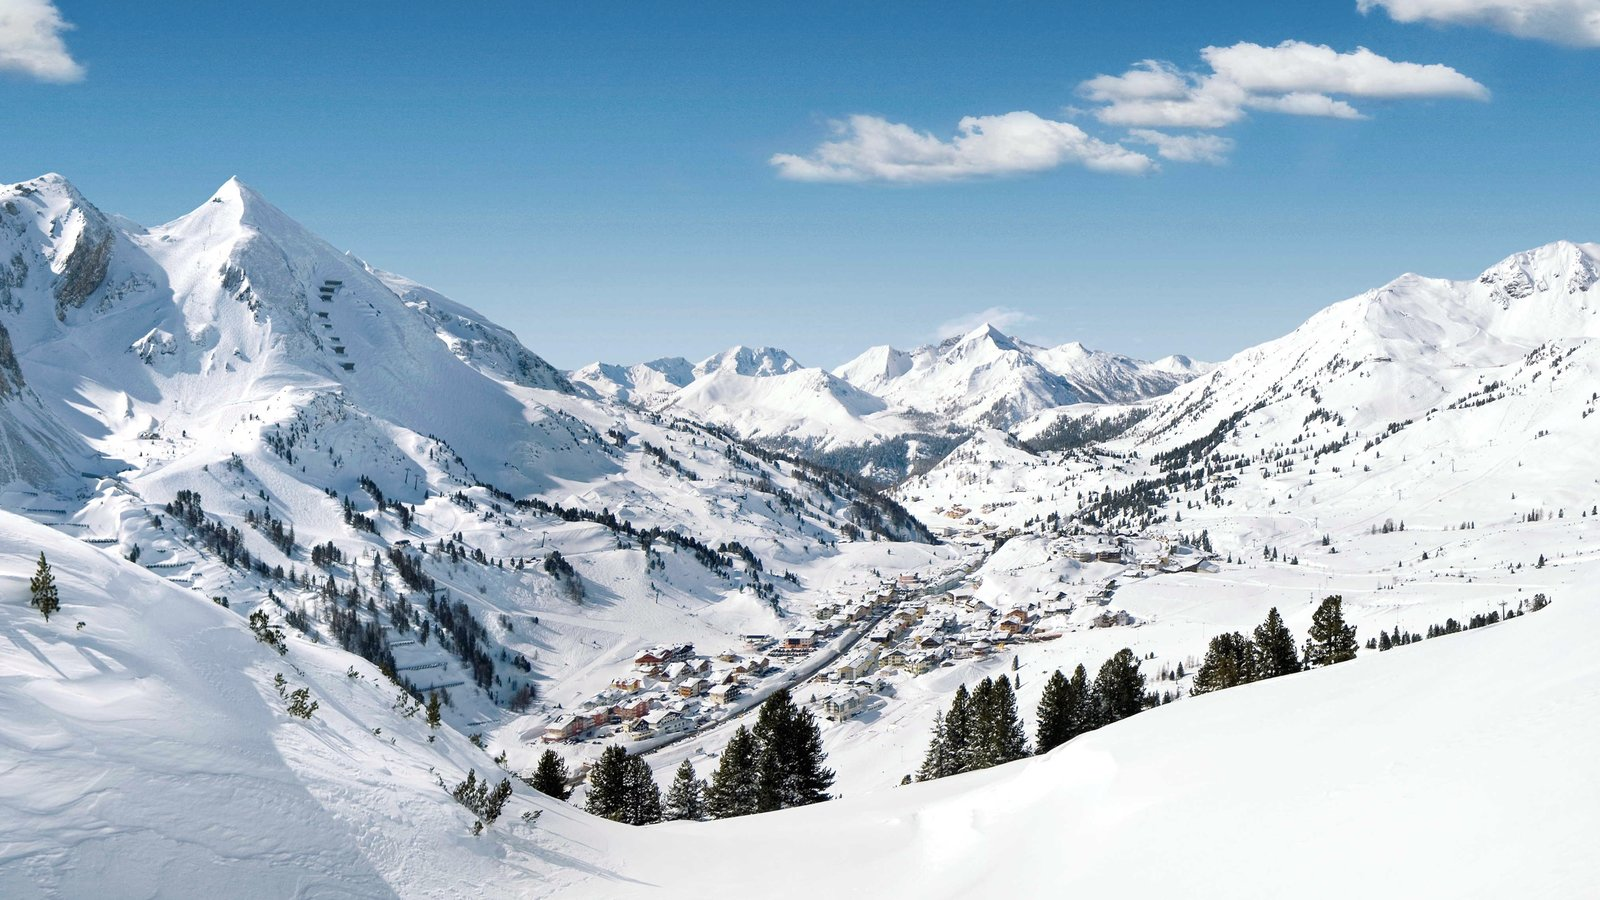 Obertauern which includes landscape views, mountains and snow